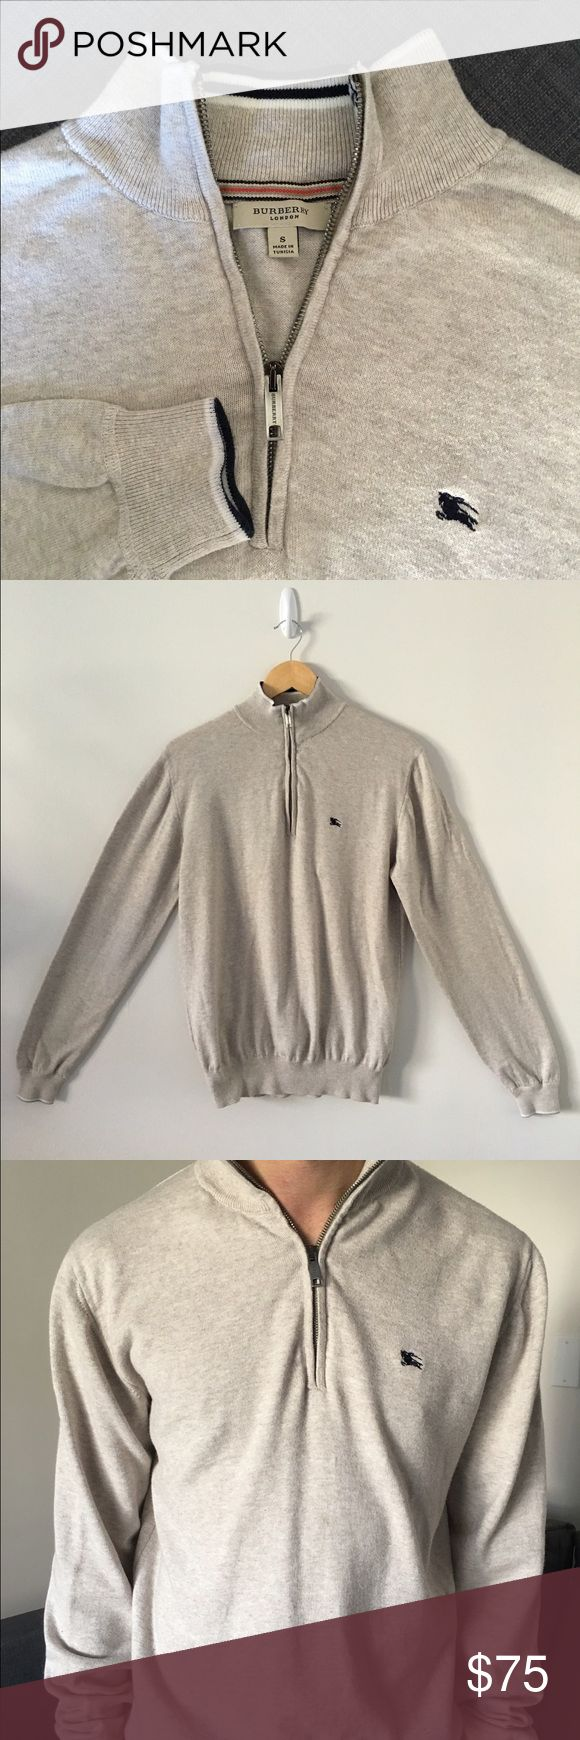 Burberry London Men's Half Zip Sweater Size S Burberry London Men's Half Zip Sweater in Size S.  Half zip sweater in cream with ribbed hems and Burberry logo on left breast. Made from 100% cotton. Lightly worn with no visible wear. Burberry Sweaters Zip Up